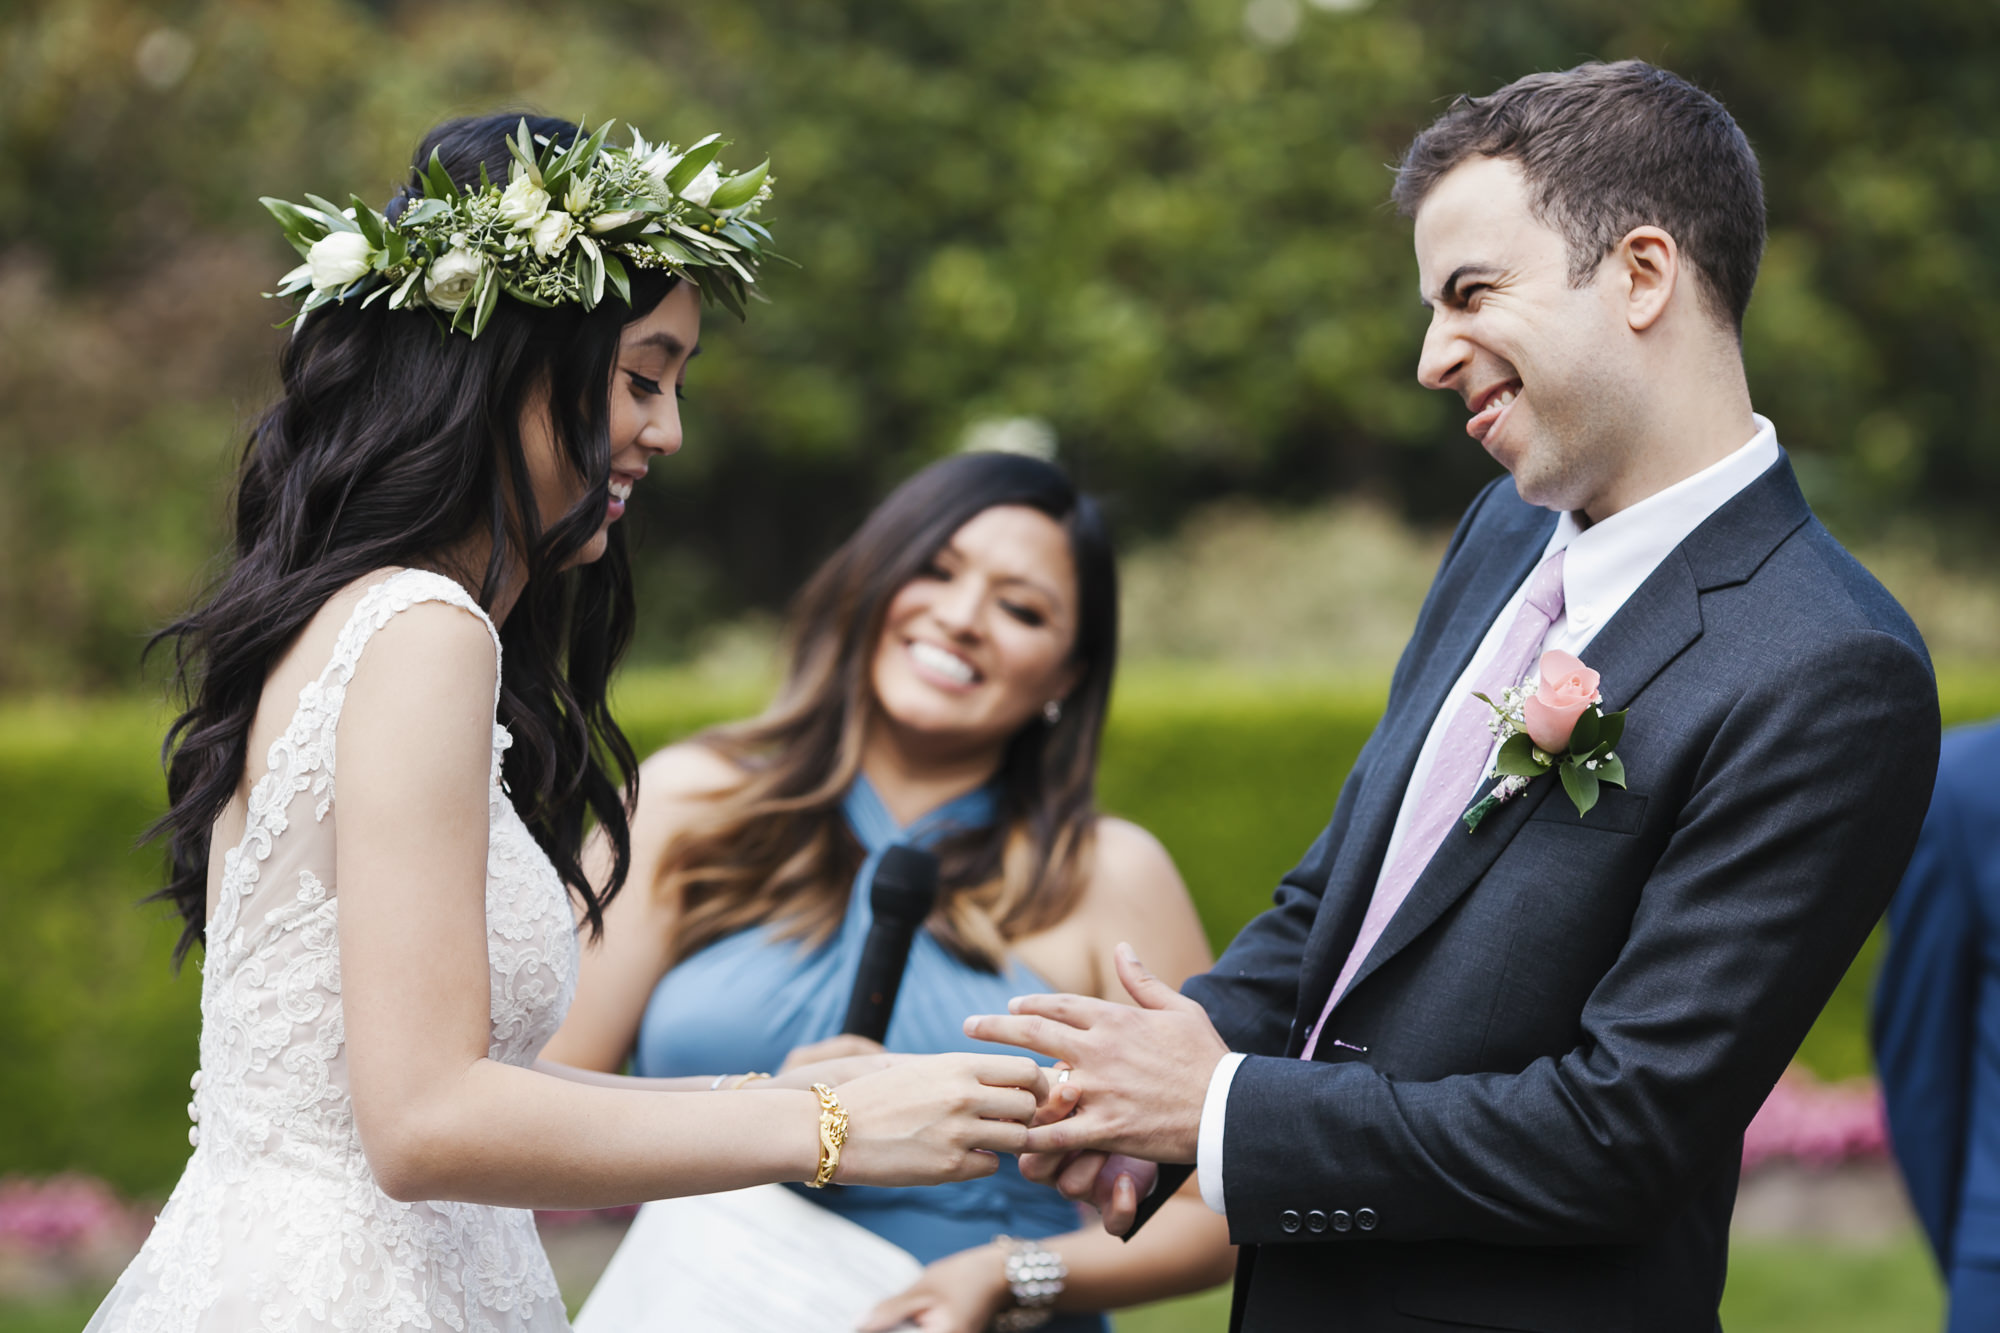 Bride has trouble getting wedding ring on her groom's finger while he makes a funny face